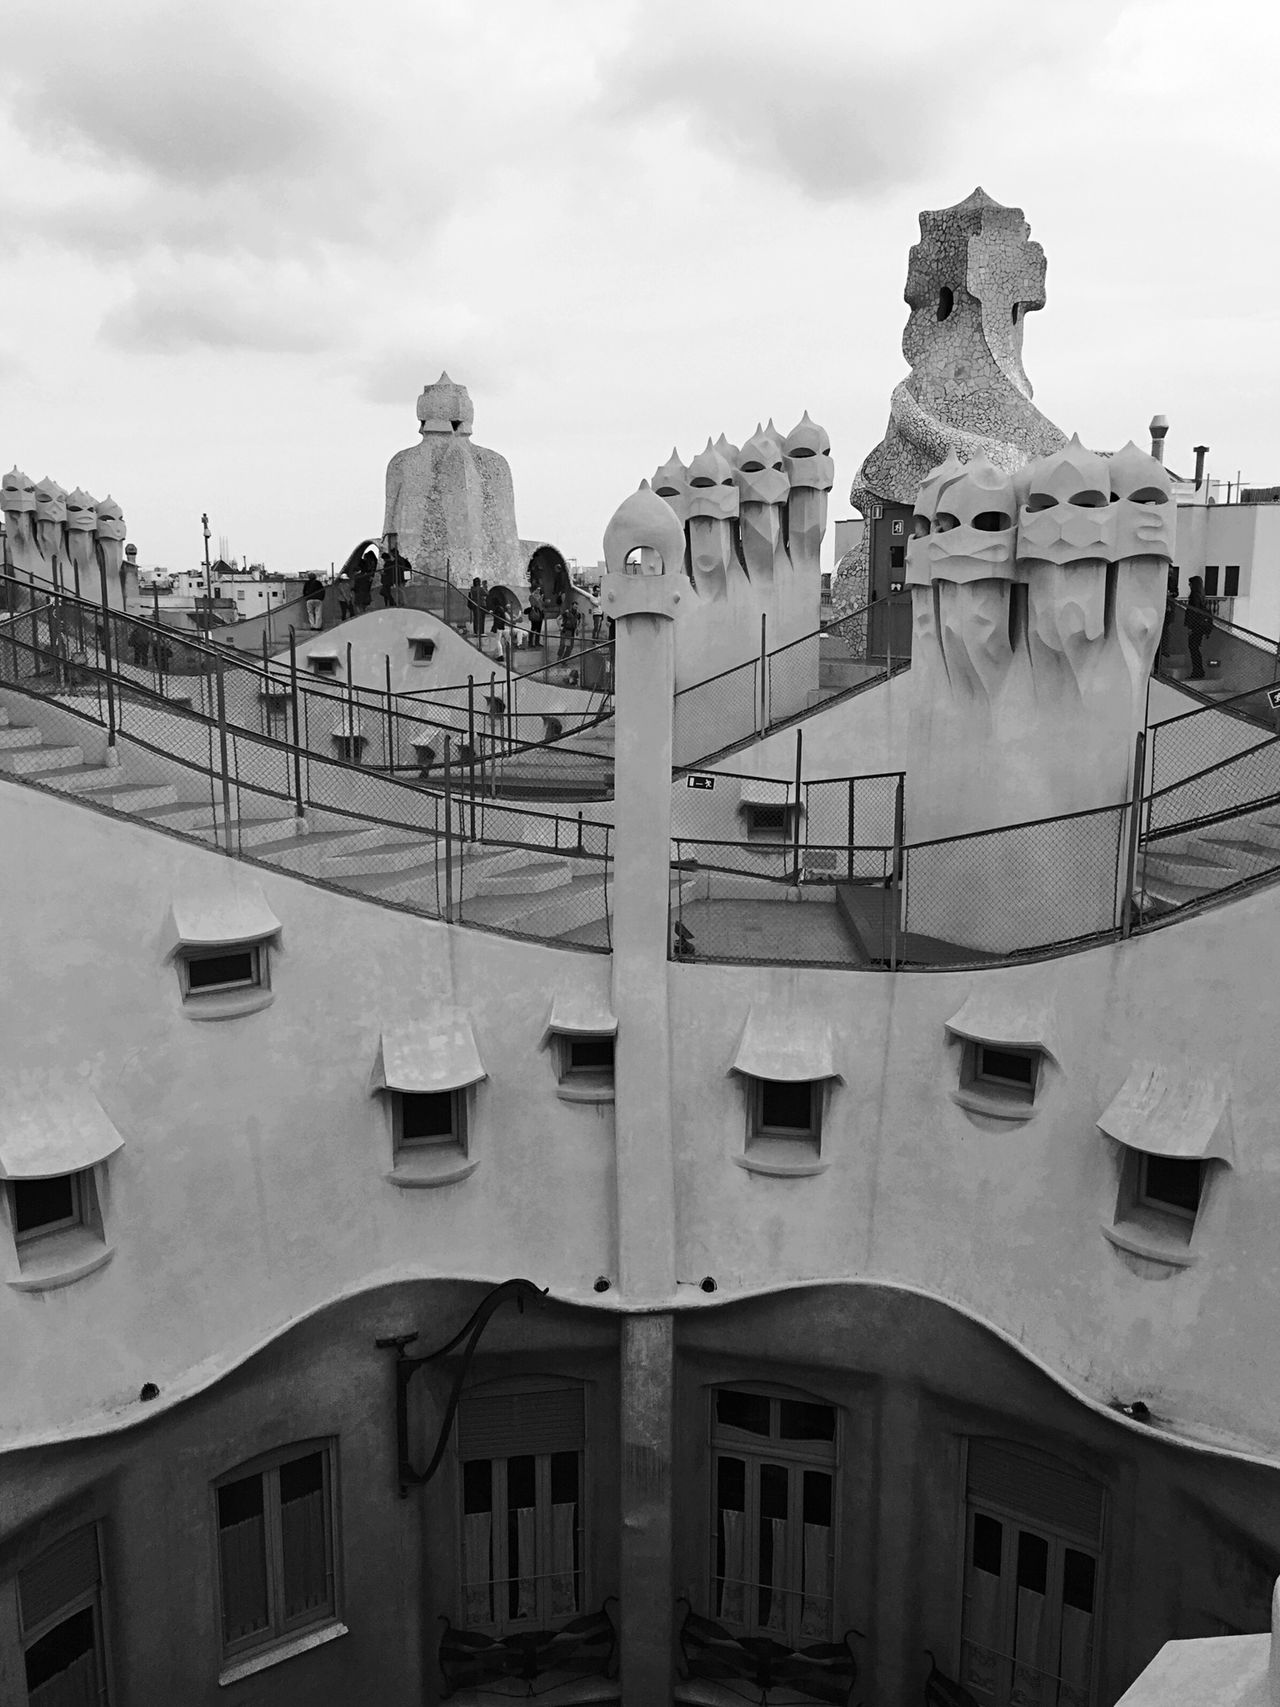 Lapedrera Architecture_collection Architecture_bw Modernisme Gaudi Architecture Bw_collection Streetphoto_bw EyeEm Best Shots - Black + White EE_Daily: Black And White